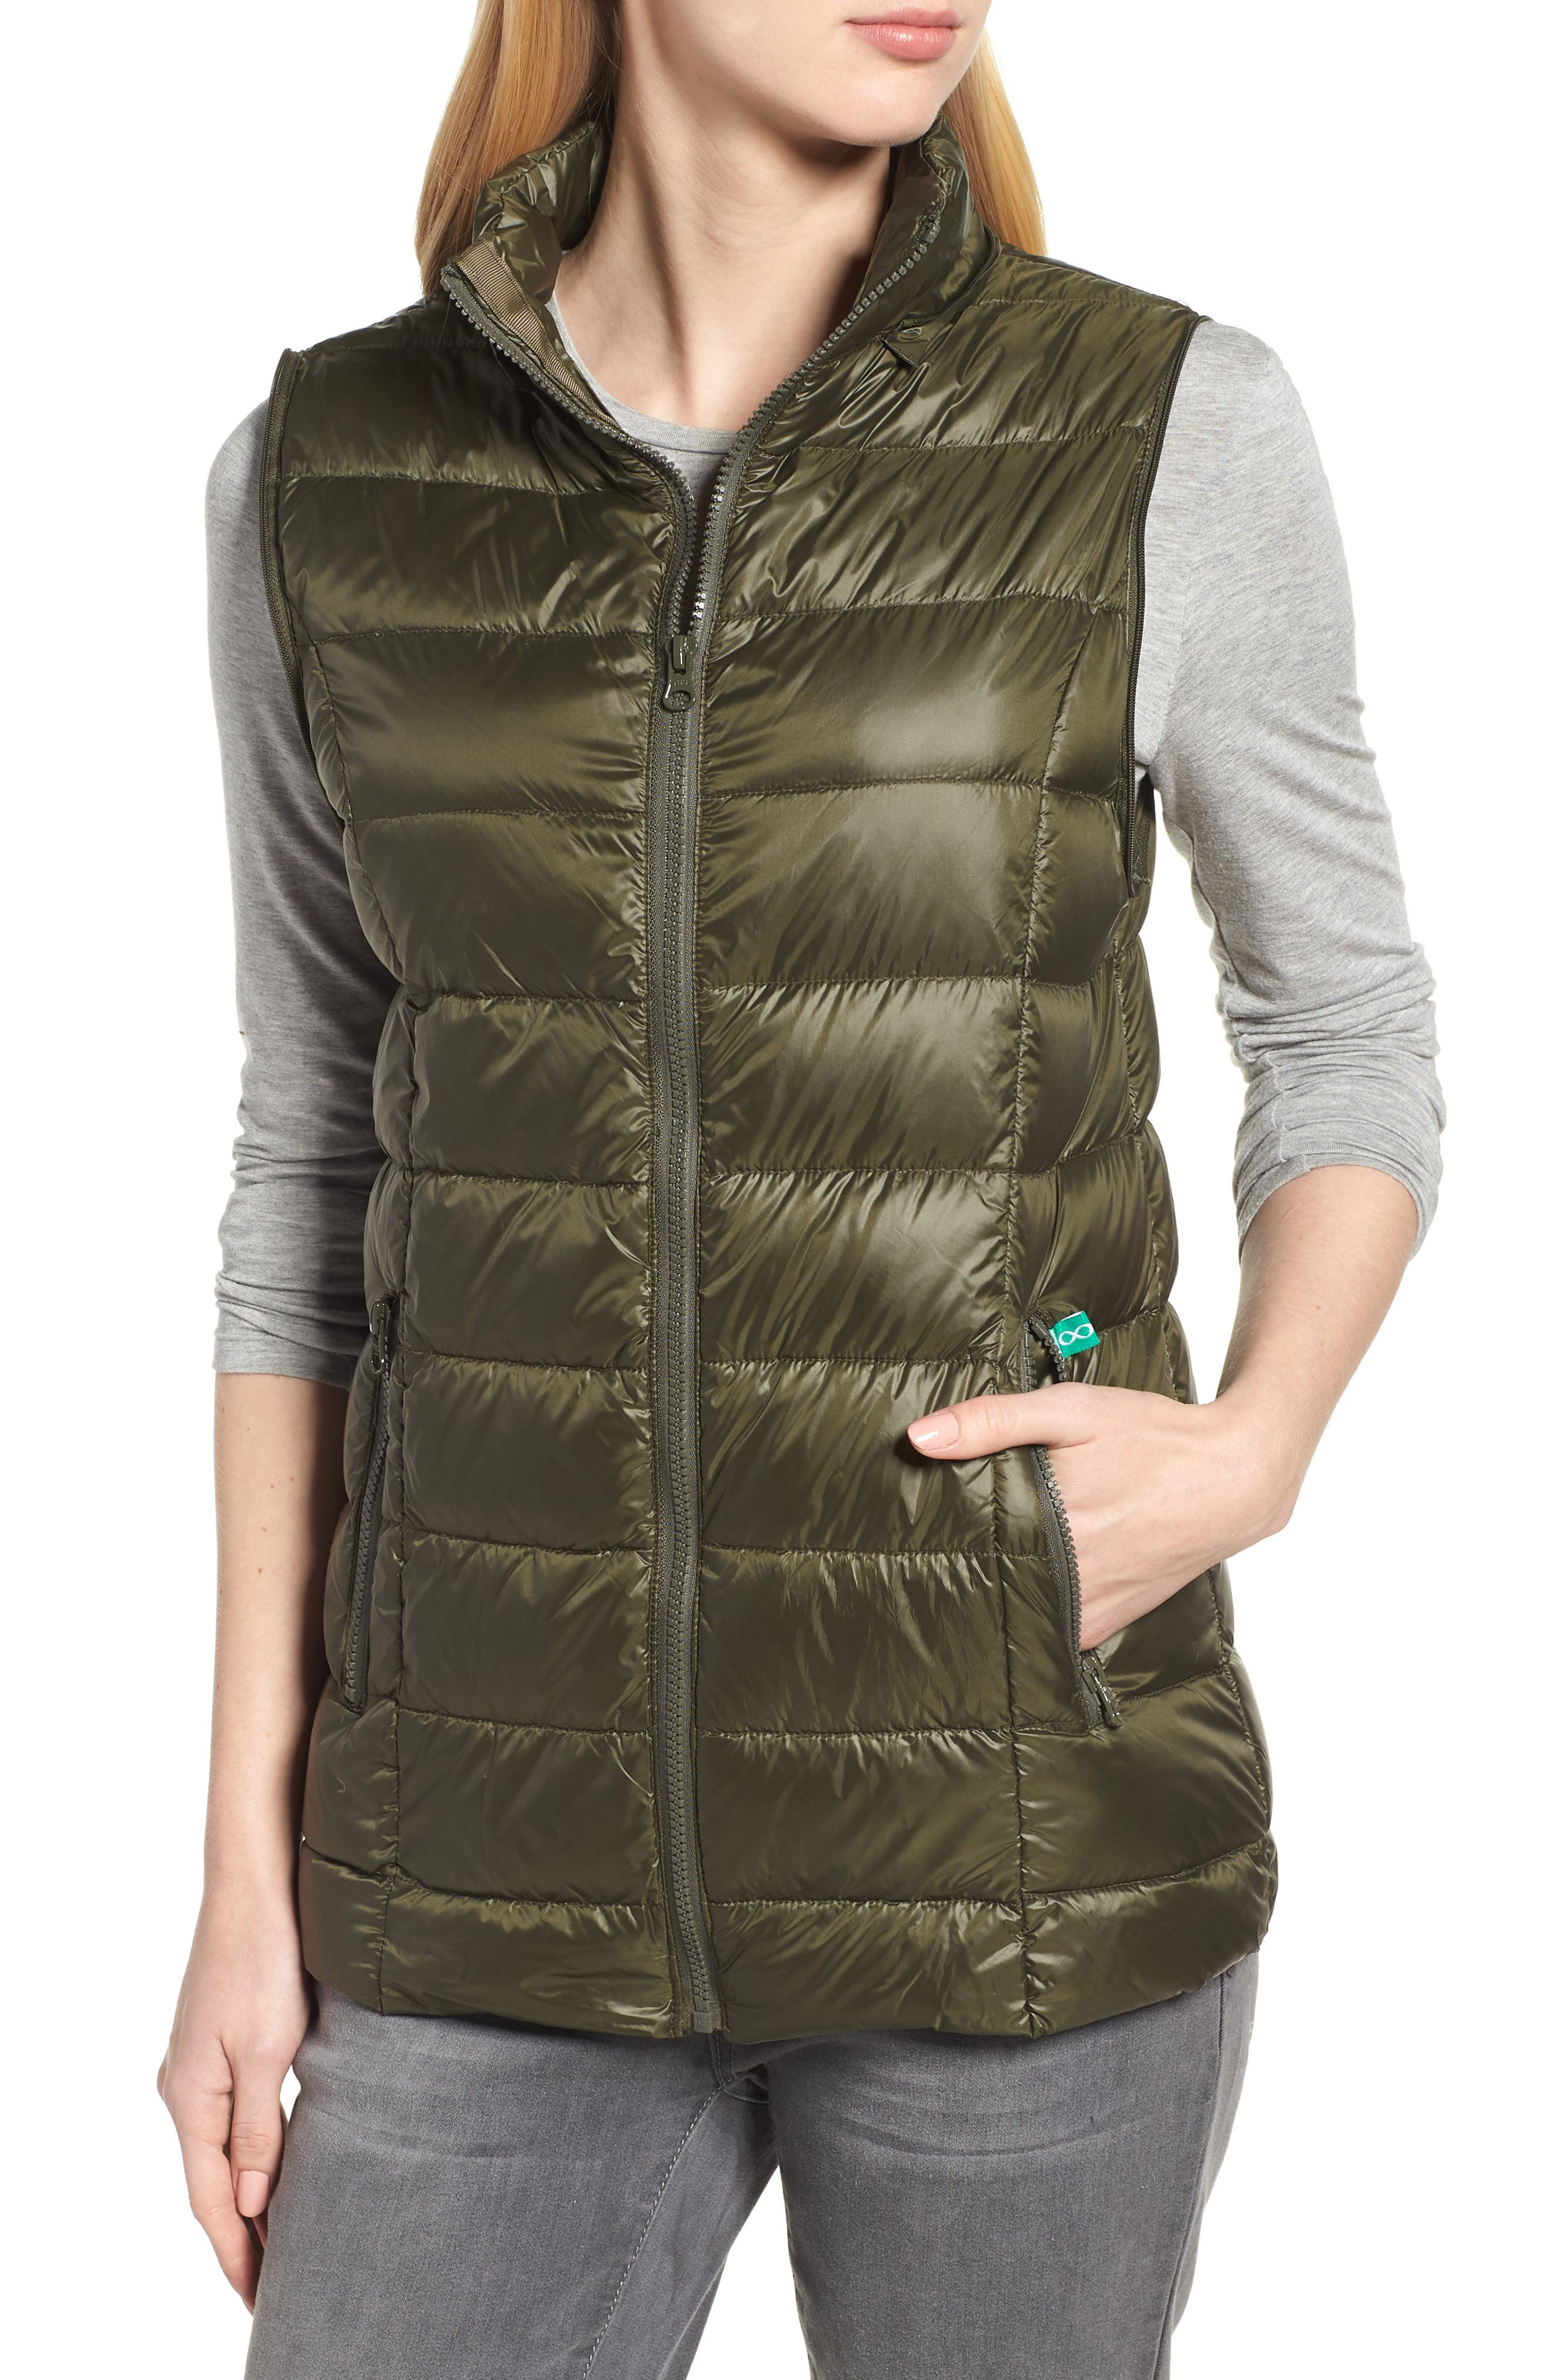 Lightweight Puffer Convertible 3-in-1 Maternity Jacket,                             Alternate thumbnail 6, color,                             Khaki Green